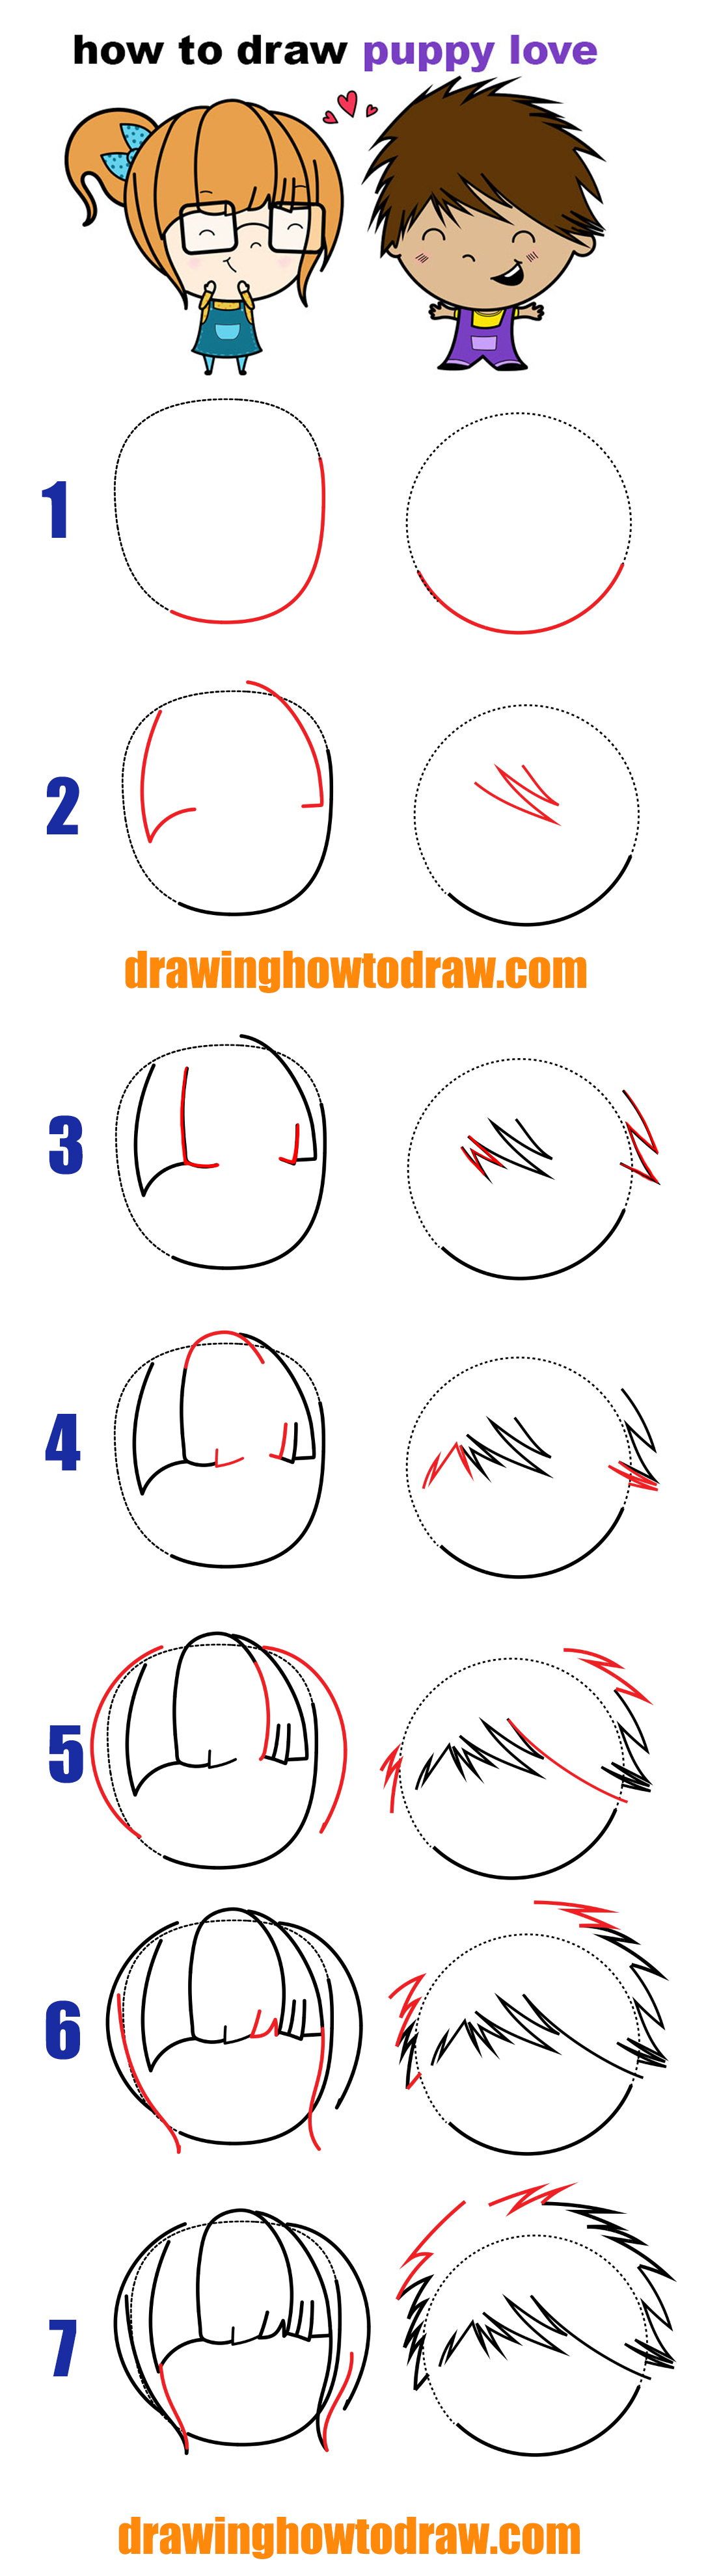 LearnHow to Draw a Cute / Kawaii Boy and Girl in Love With Easy Step by Step Drawing Tutorial for Kids and Beginners